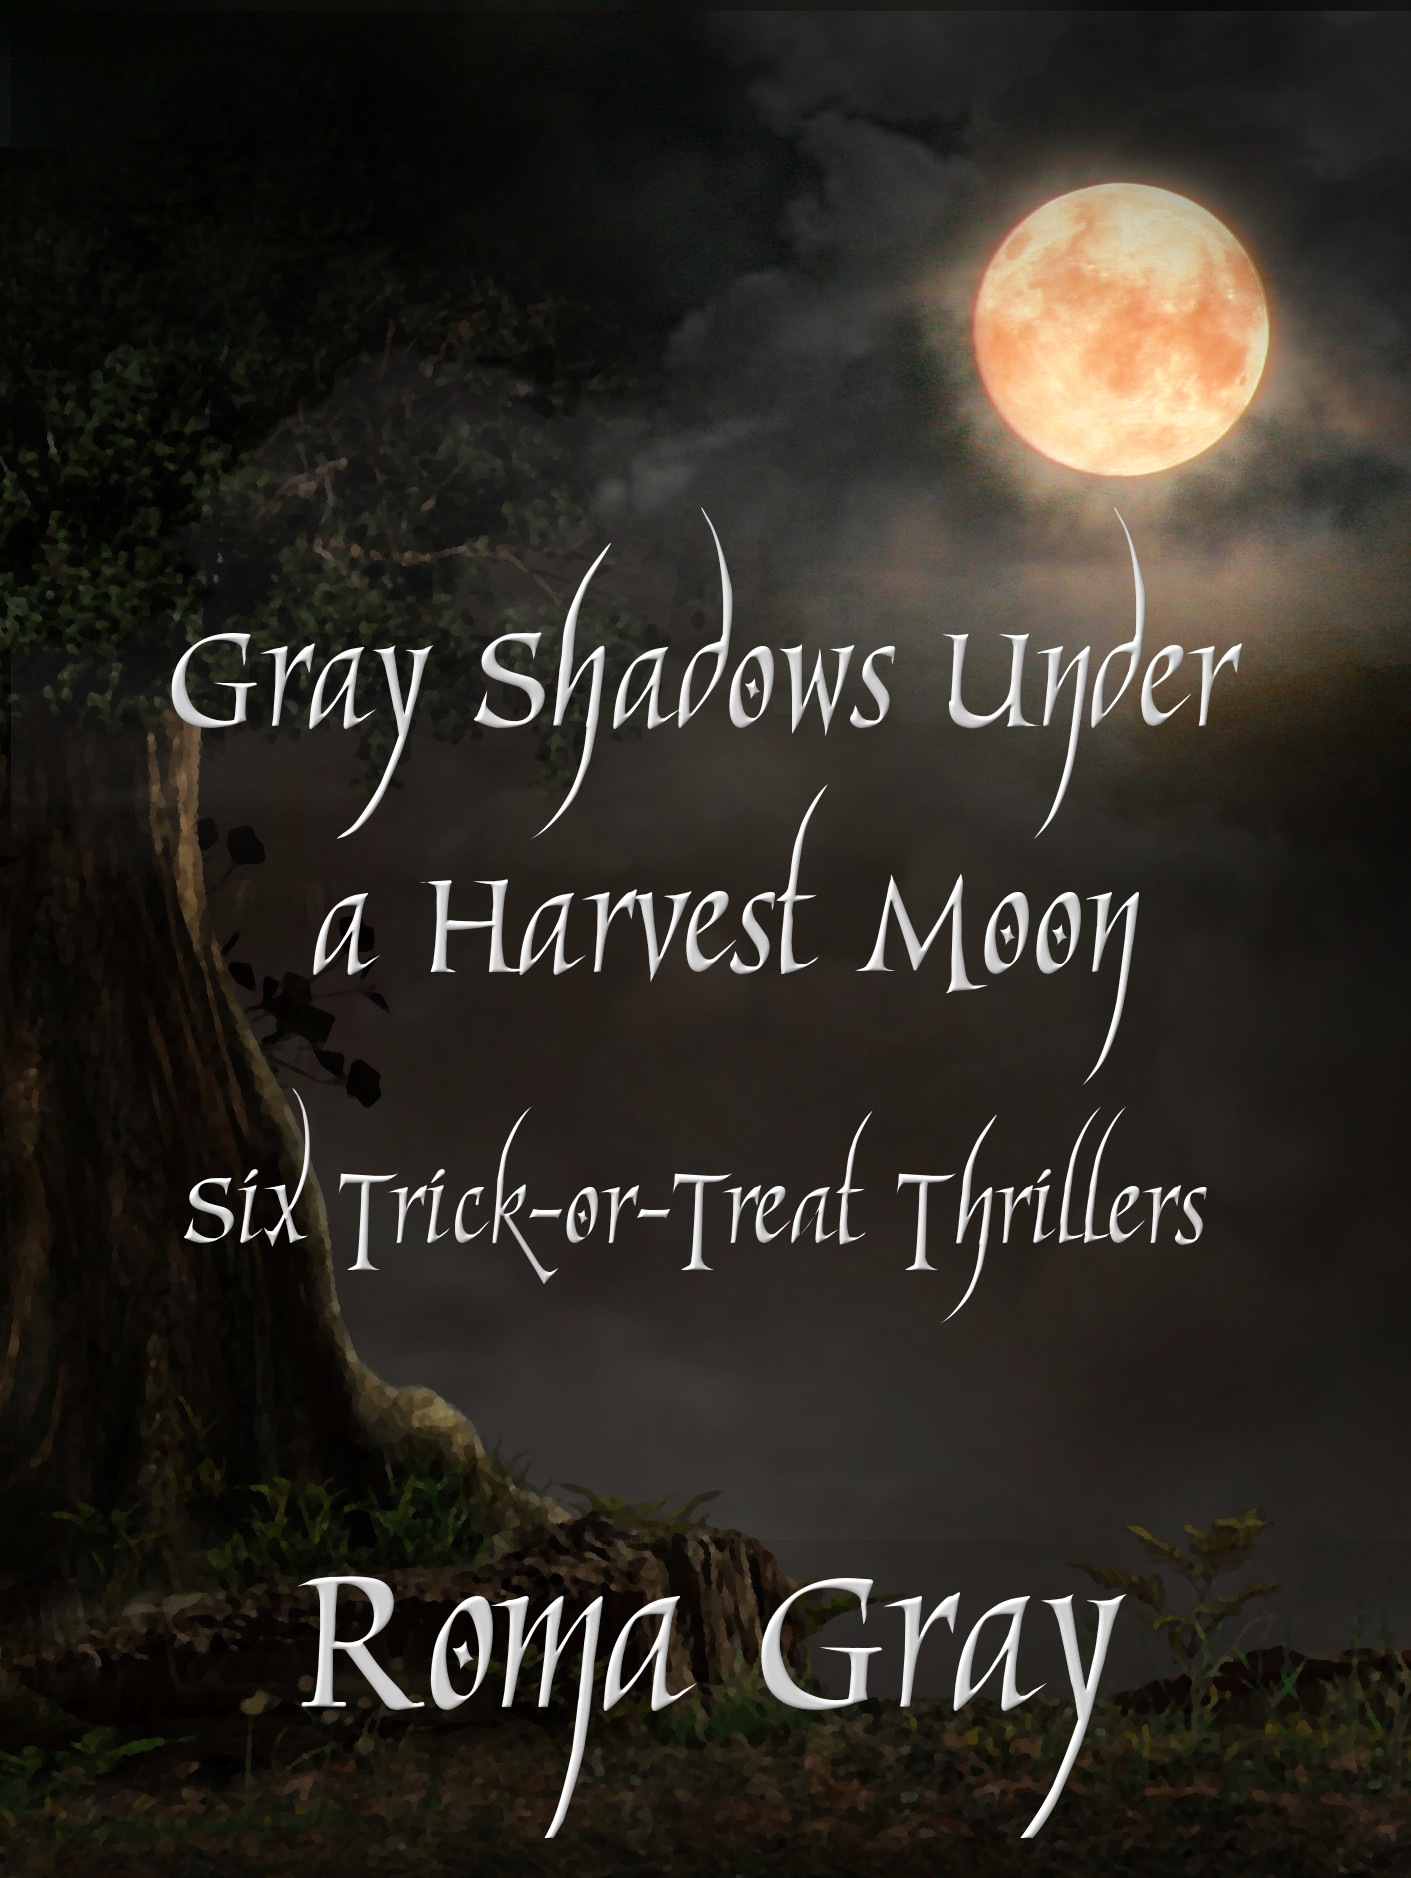 Click here to get Gray Shadows Under a Harvest Moon at Amazon